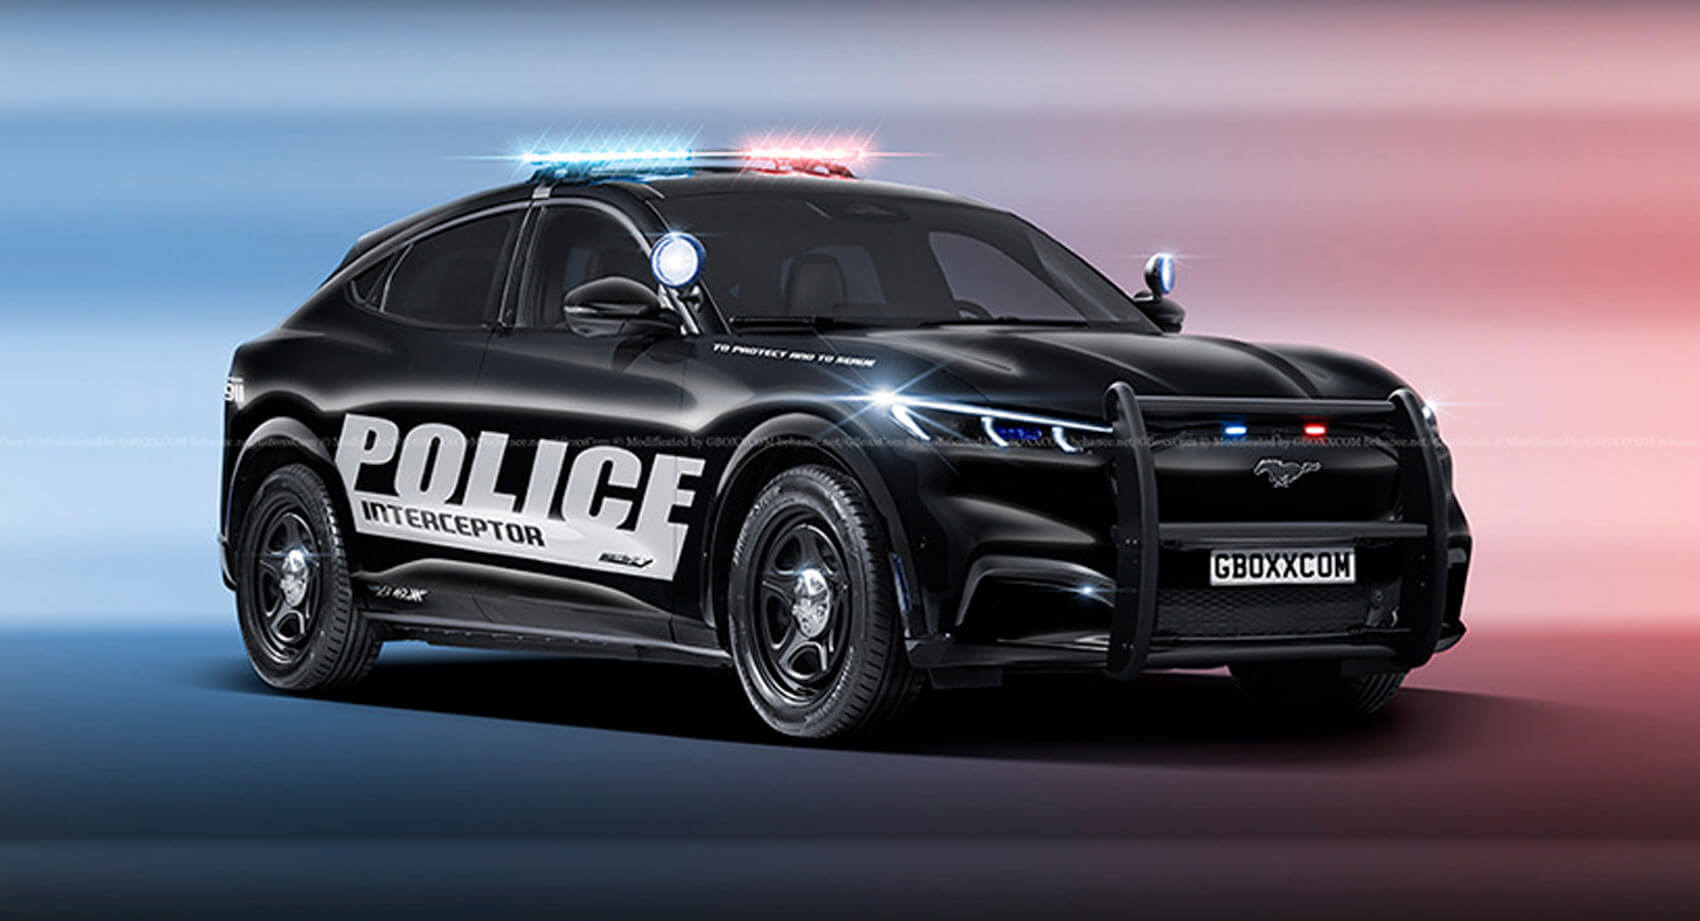 Ford Mustang Mach E Looks Good In Police Uniform Carscoops